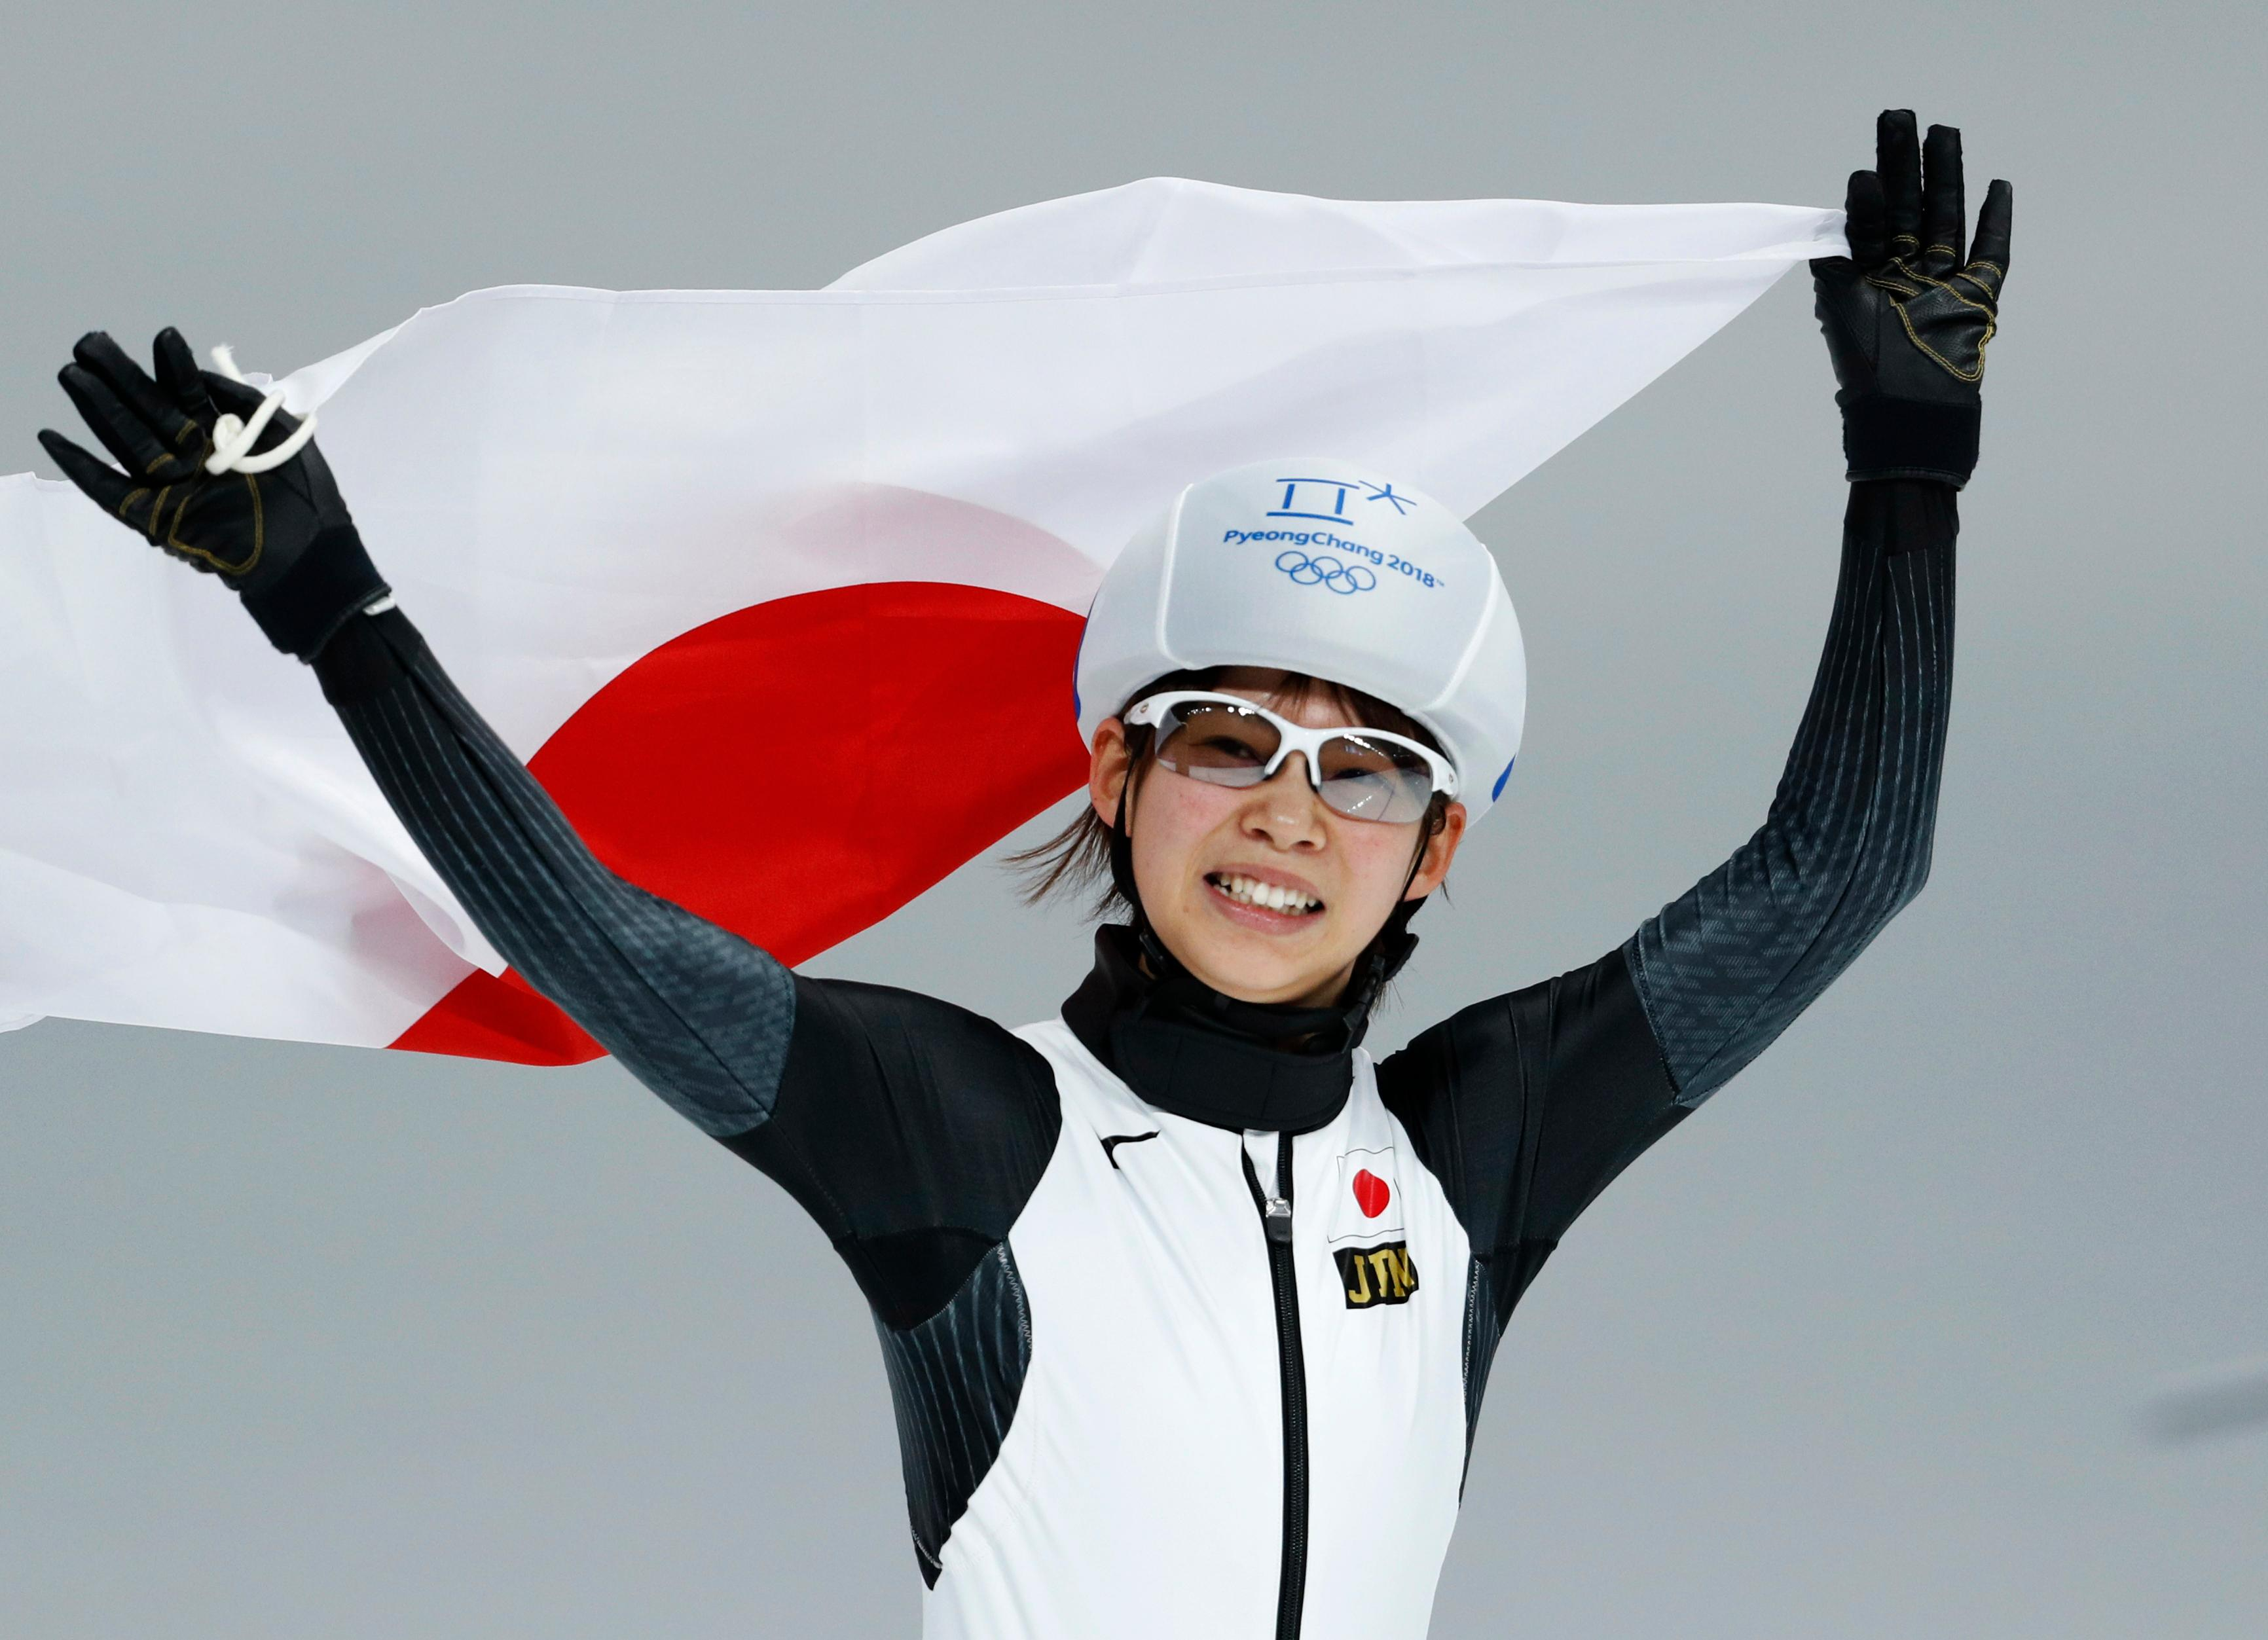 Gold medalist Nana Takagi of Japan celebrates with the national flag after the women's mass start final speedskating race at the Gangneung Oval at the 2018 Winter Olympics in Gangneung, South Korea, Saturday, Feb. 24, 2018. (AP Photo/John Locher)